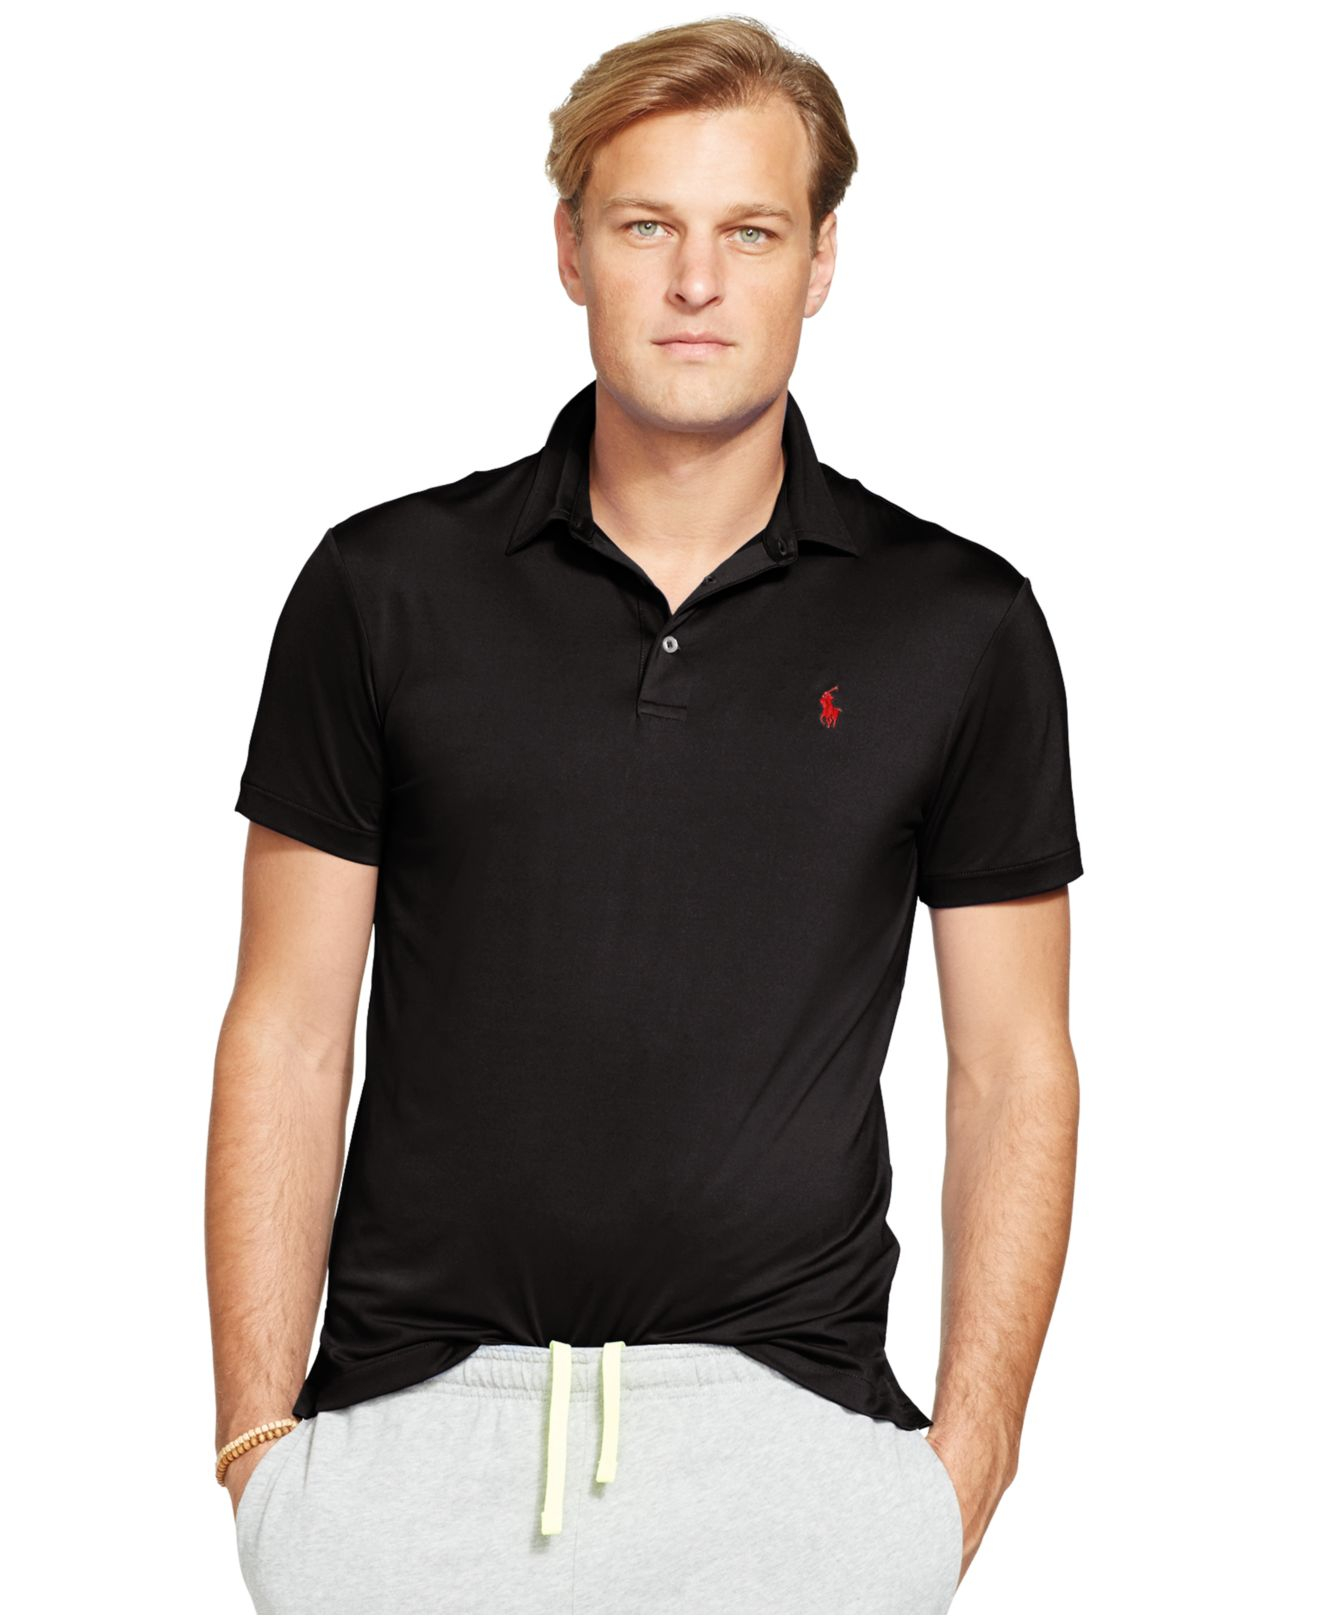 lyst polo ralph lauren big tall performance polo shirt in black for men. Black Bedroom Furniture Sets. Home Design Ideas